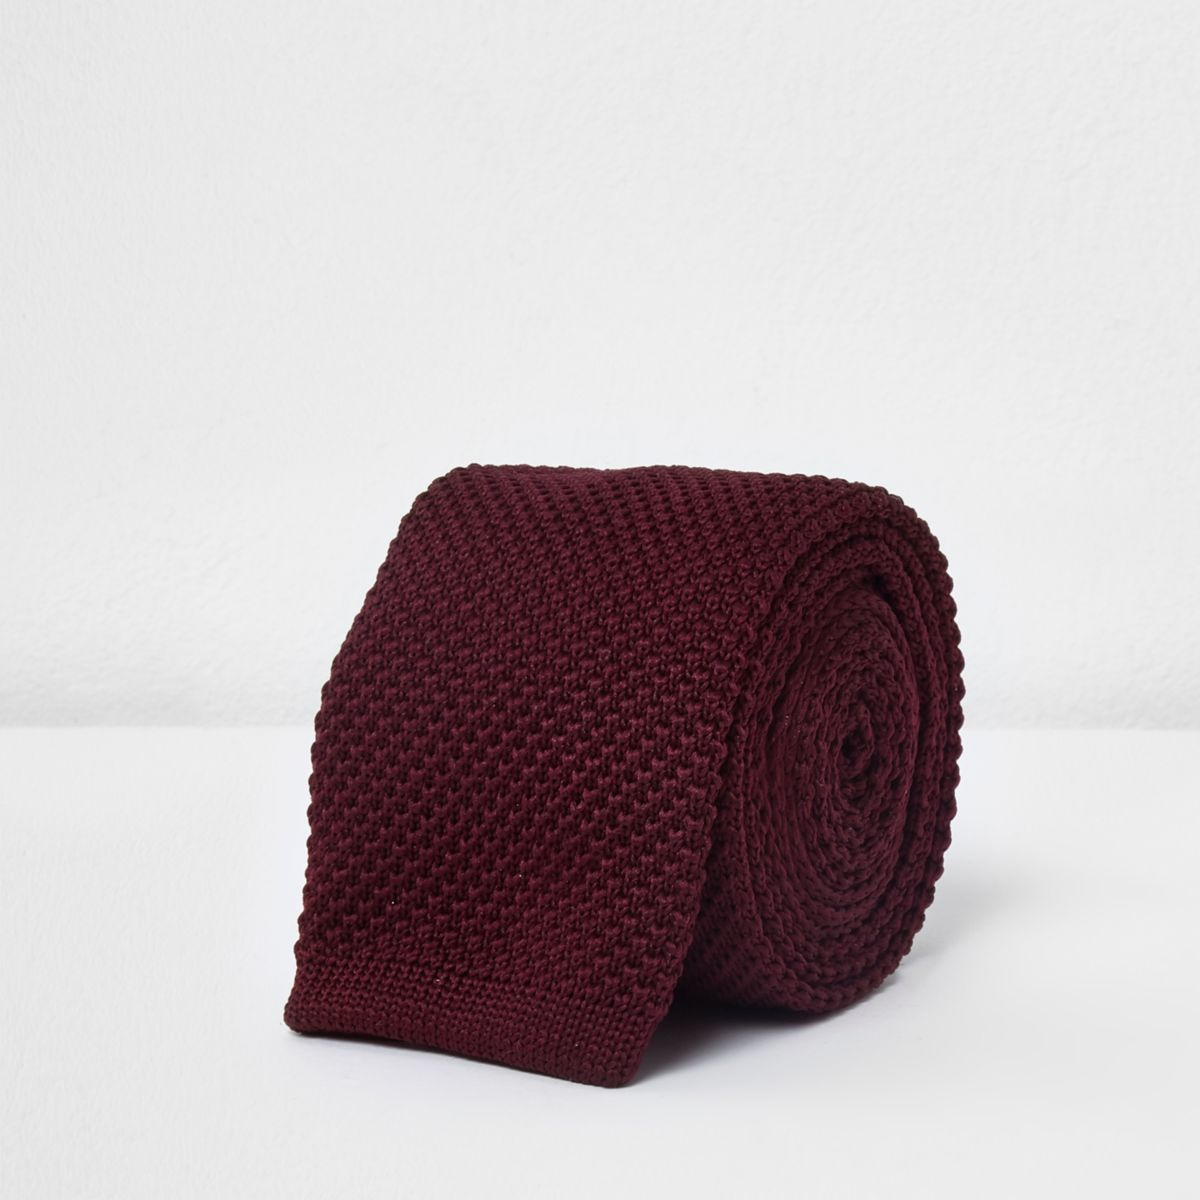 Dark red knitted tie